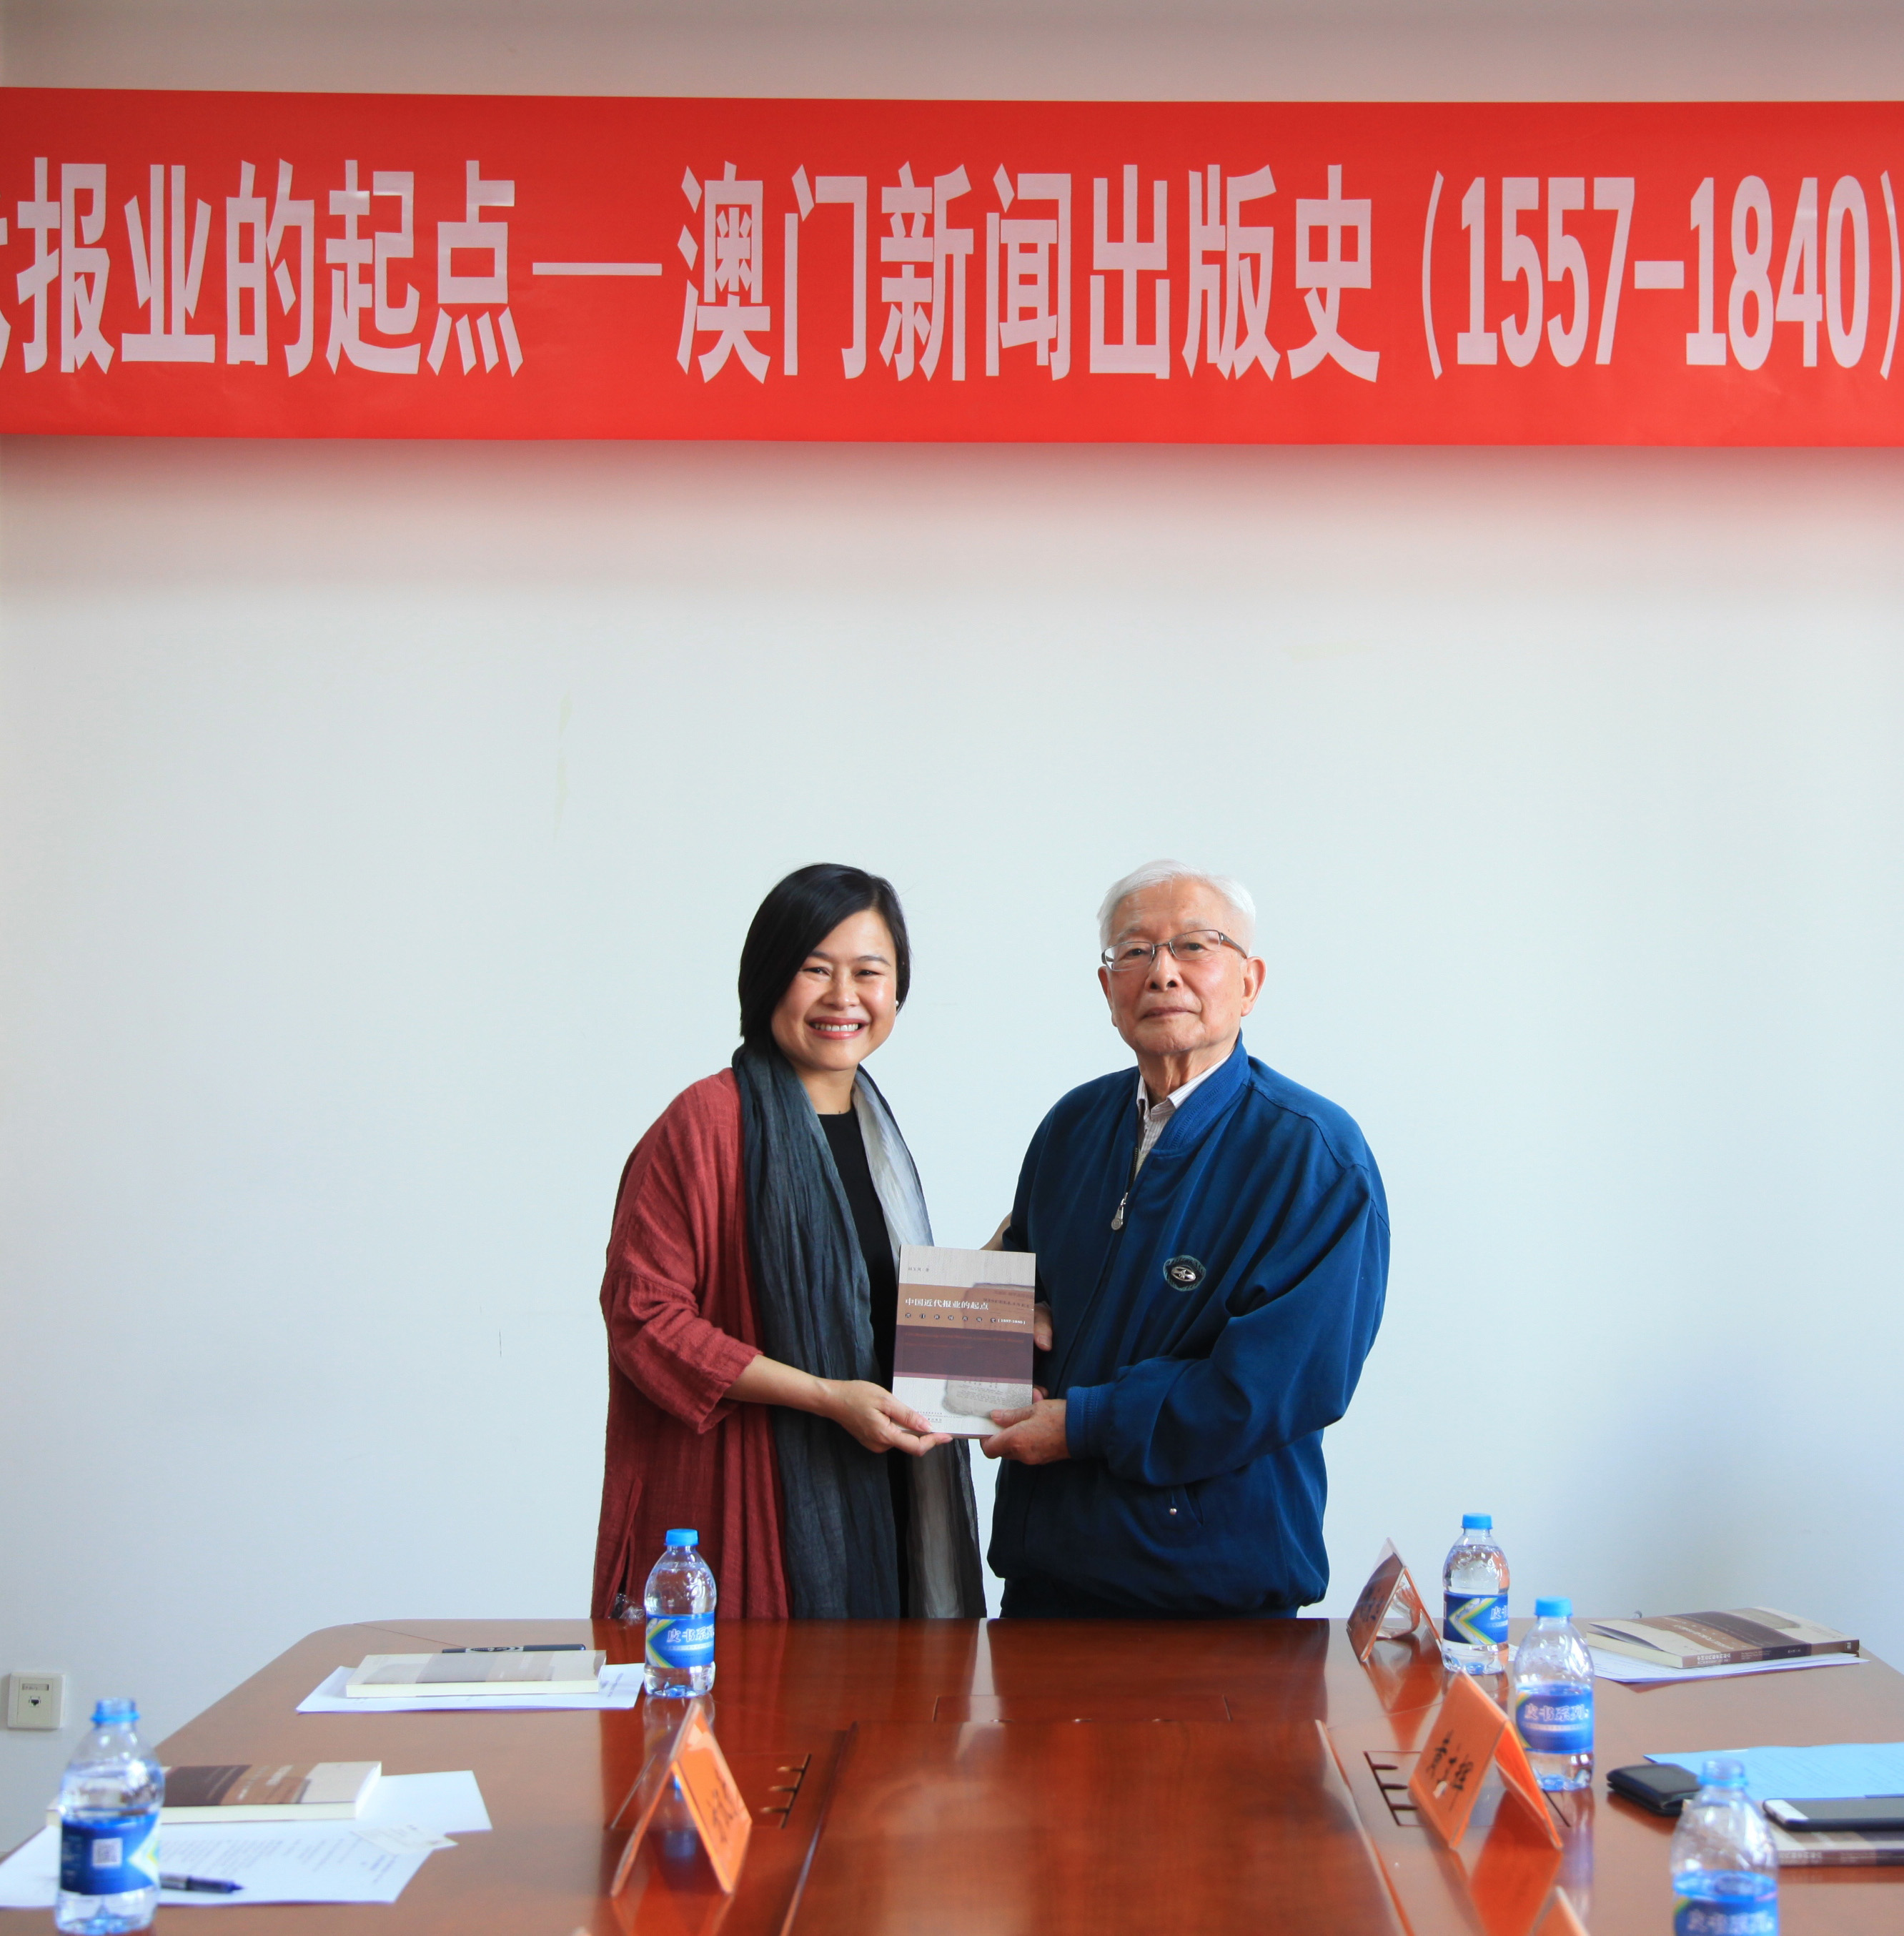 Dr Lam presents a copy of her book to her doctoral supervisor Prof Fan Hanqi, at her Beijing book launch.